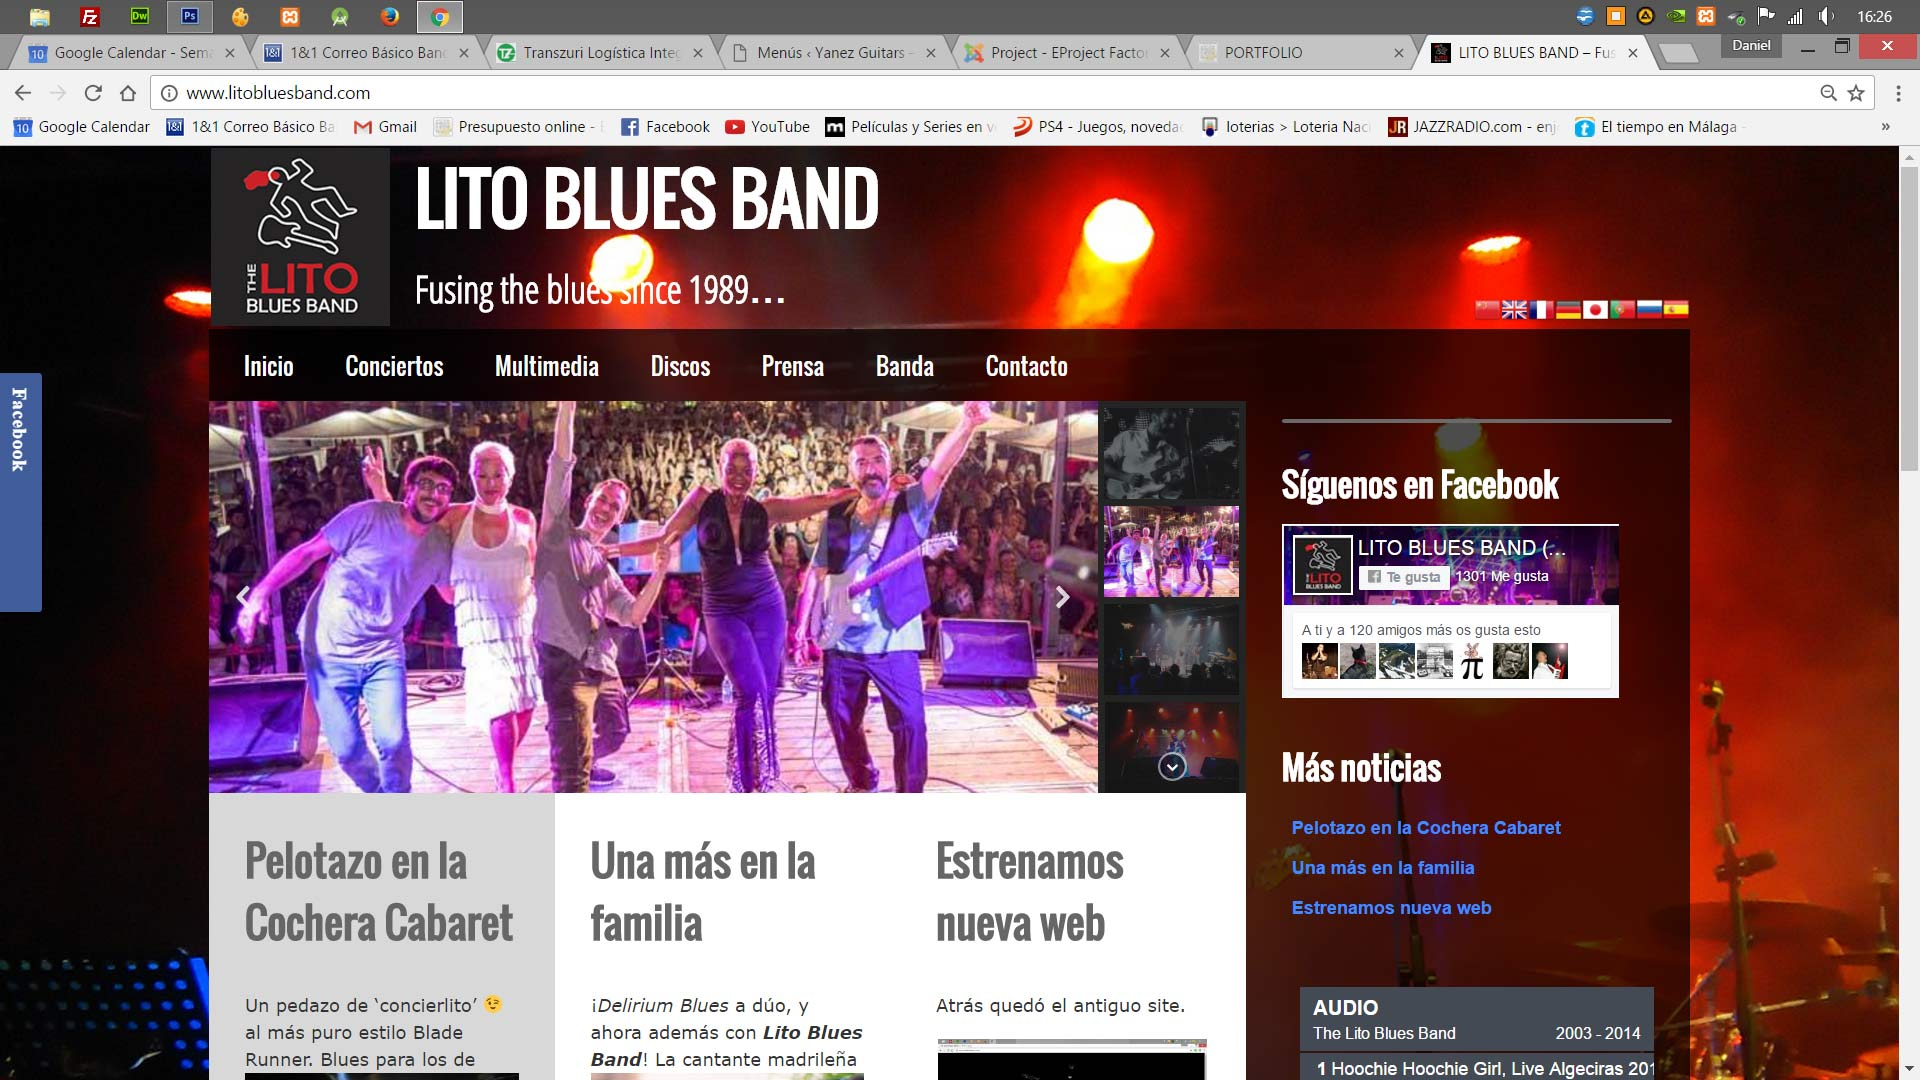 Lito Blues Band (2ª)